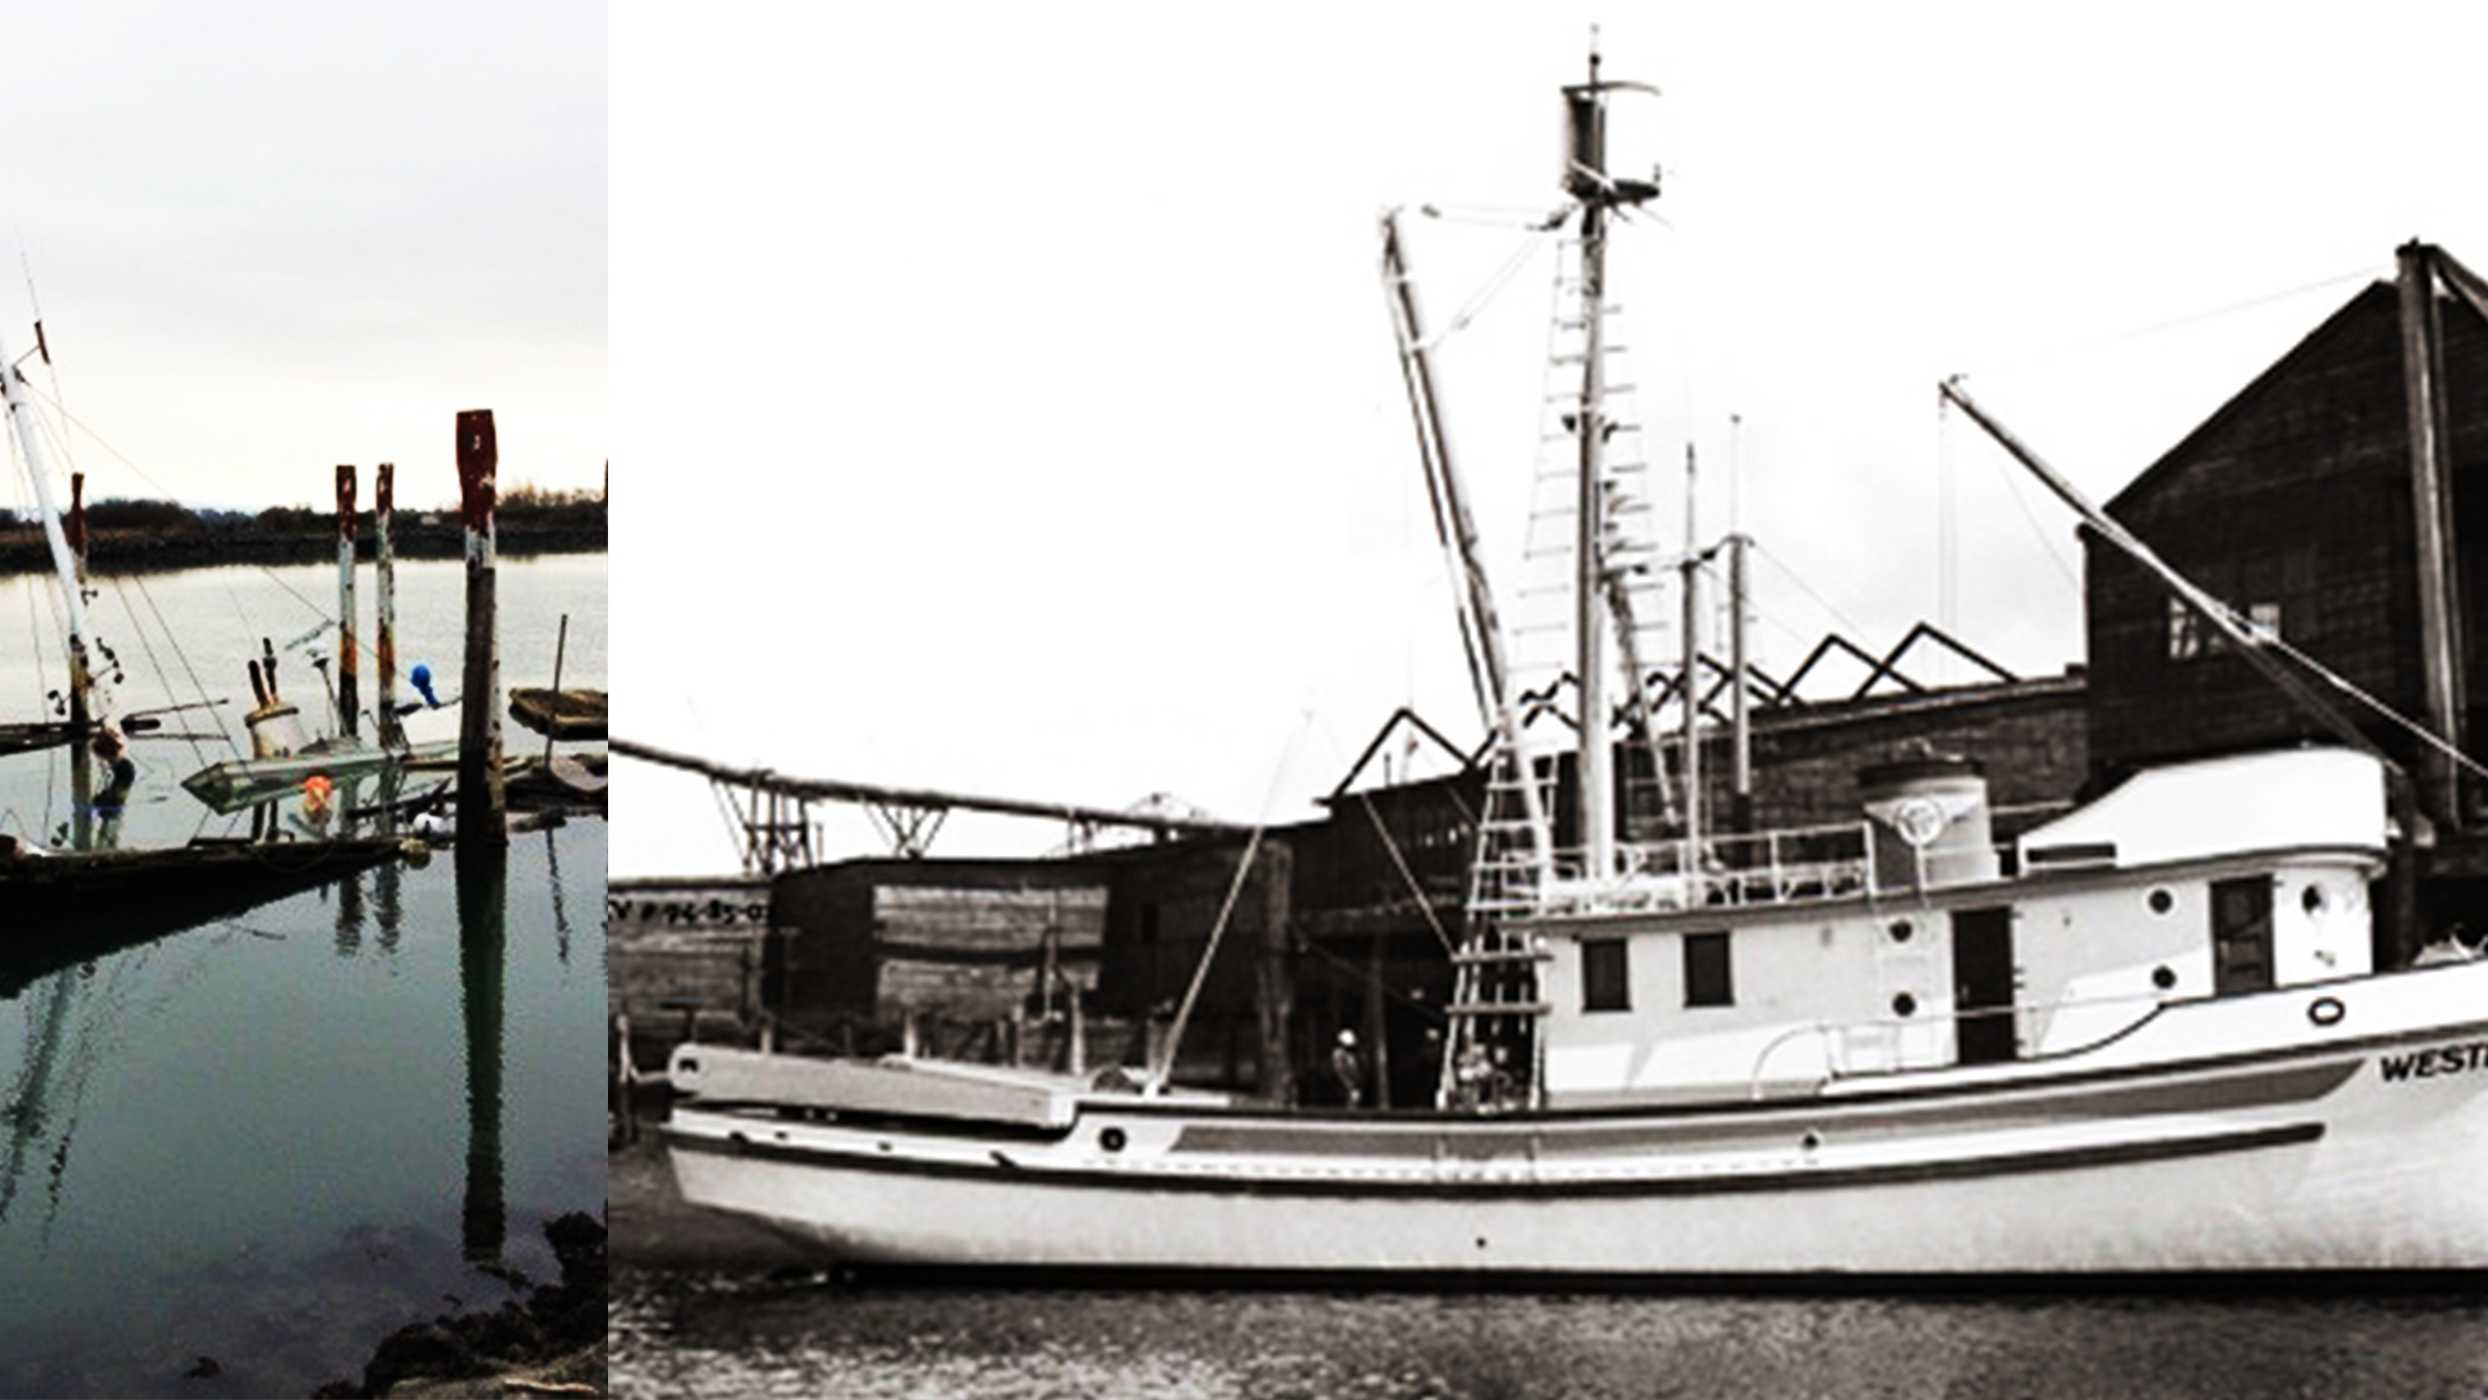 The Wester Flyer is seen when it sunk, left, and back when it was sturdy fishing boat, right.